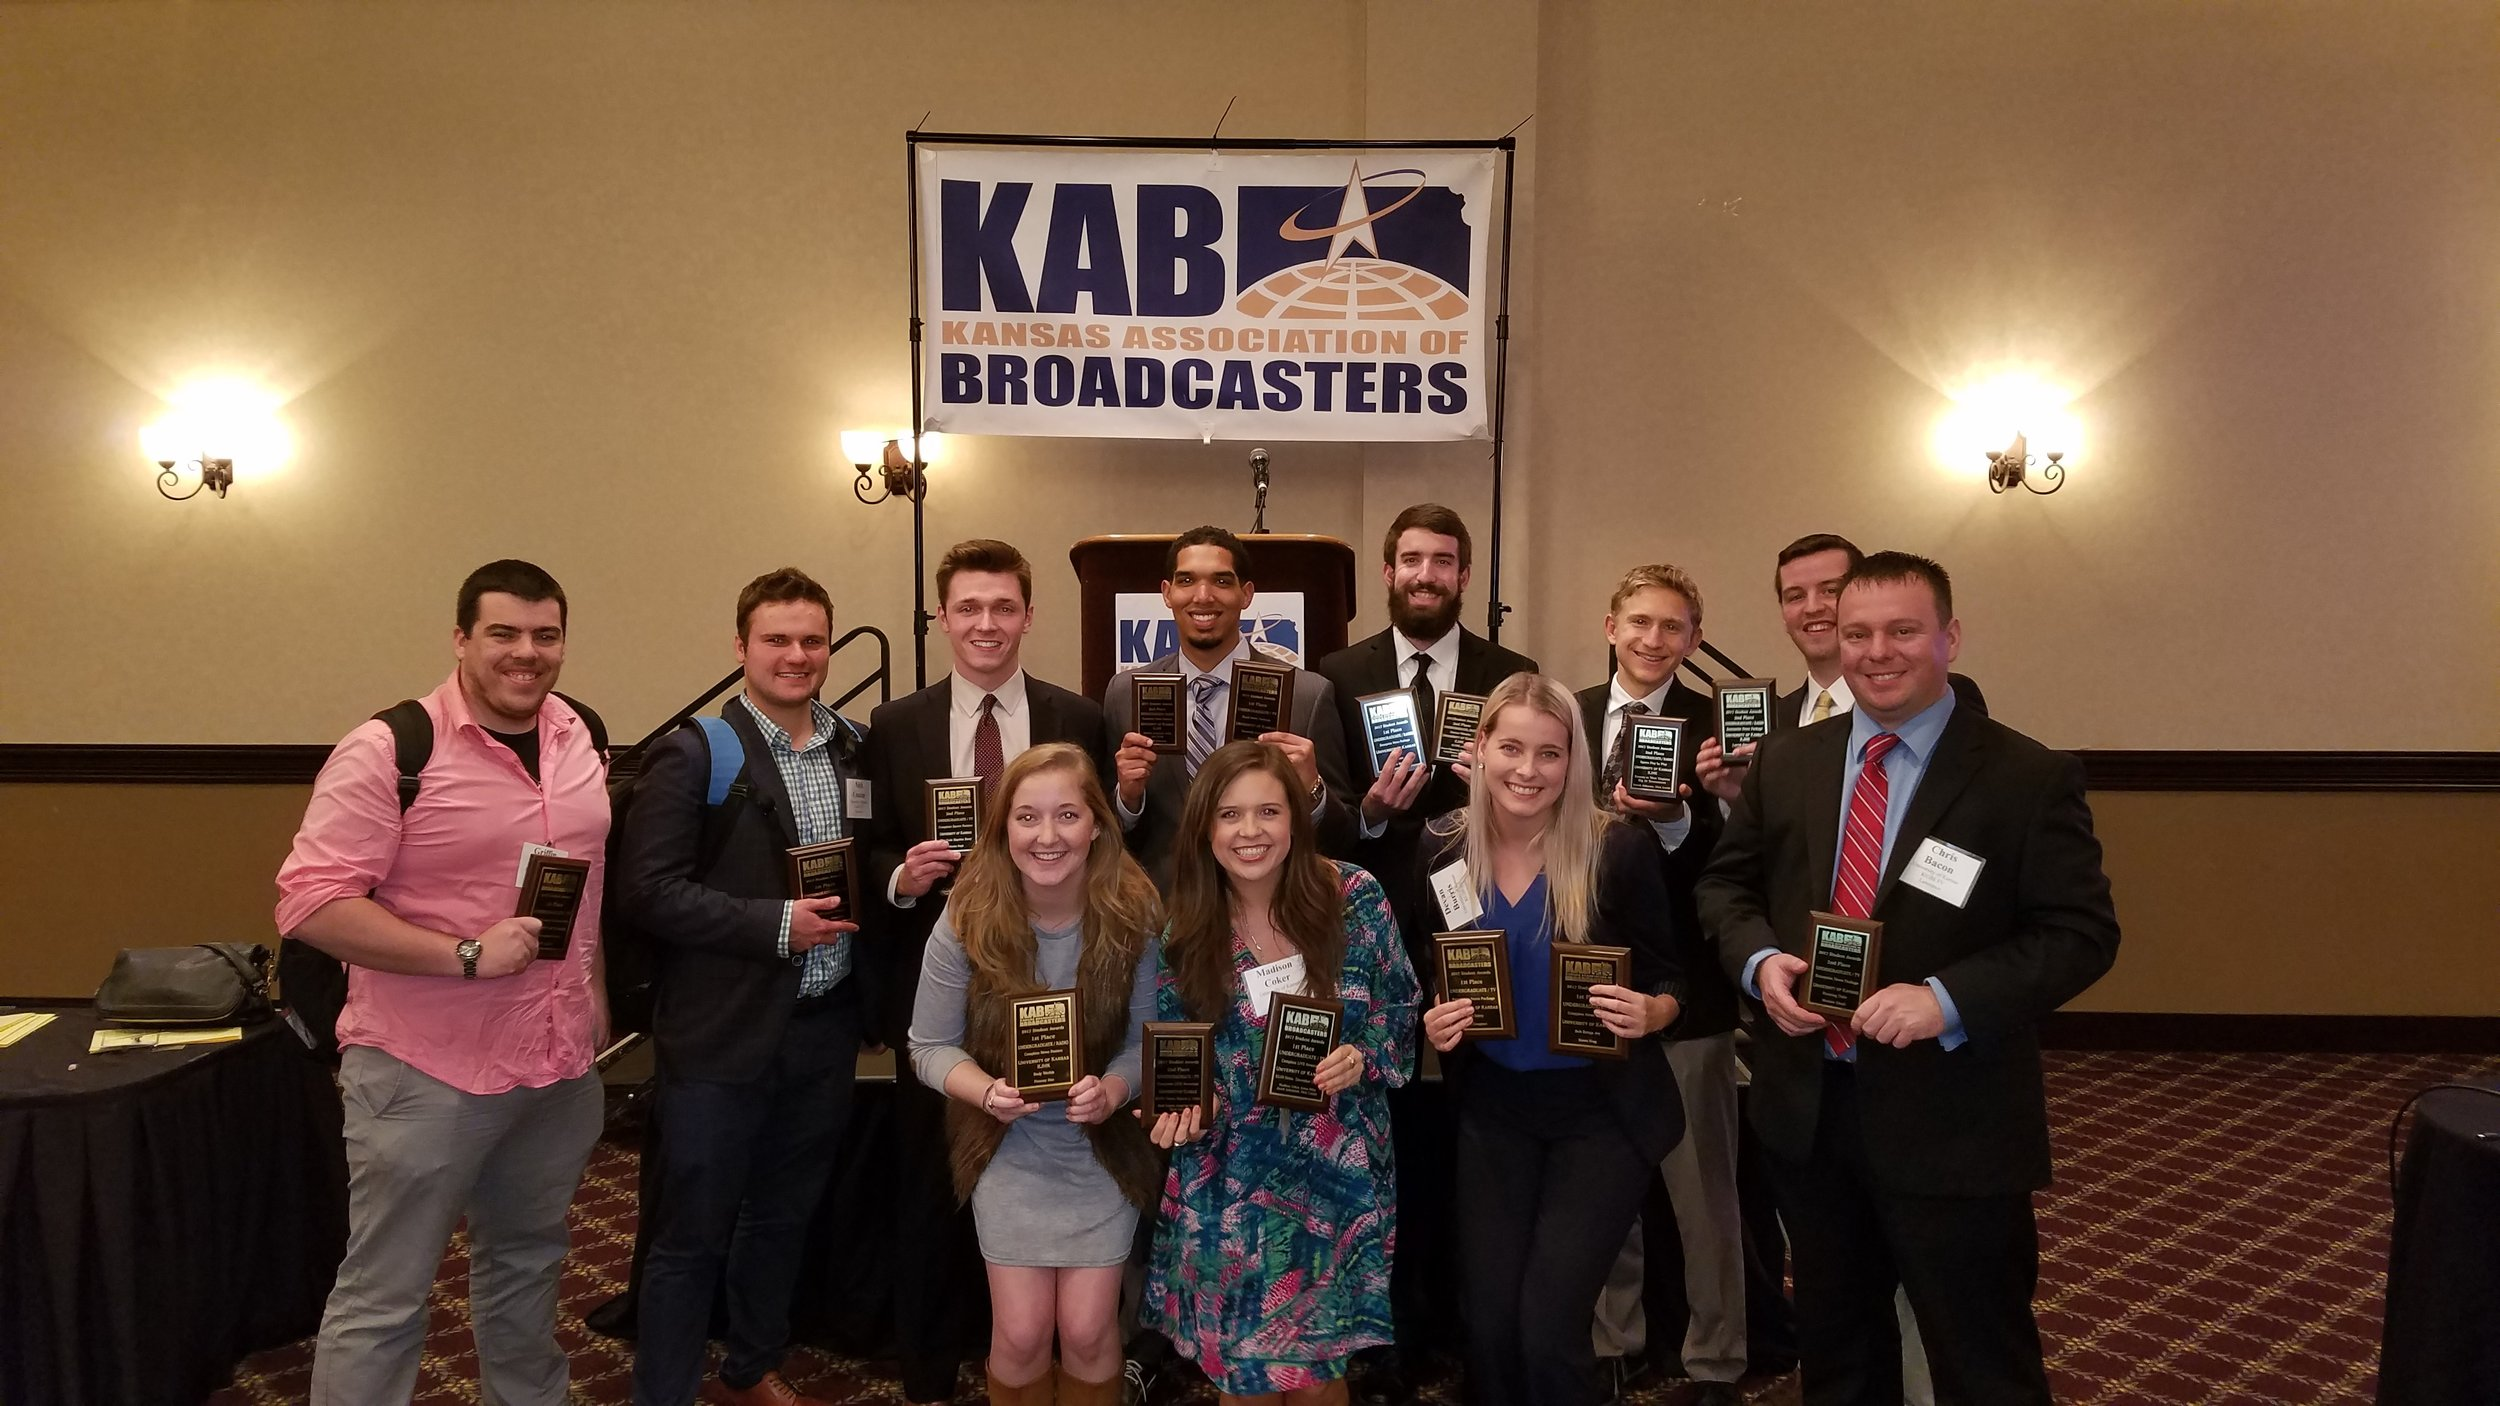 Fourteen J-School students attended the Kansas Association of Broadcasters Student Seminar on April 4 and picked up their broadcast awards. Pictured are: (Back row)  Griffin Hughes, Nick Couzin, Alex McLoon, Alden German, Shane Martin, Carson Vickroy  and  Jacob Asherman . (Front row)  Alana Flinn, Madison Coker, Devan Burris  and  Chris Bacon . Not pictured:  Associate Professor Max Utsler, Marissa Khalil  and  Libby McEnulty .